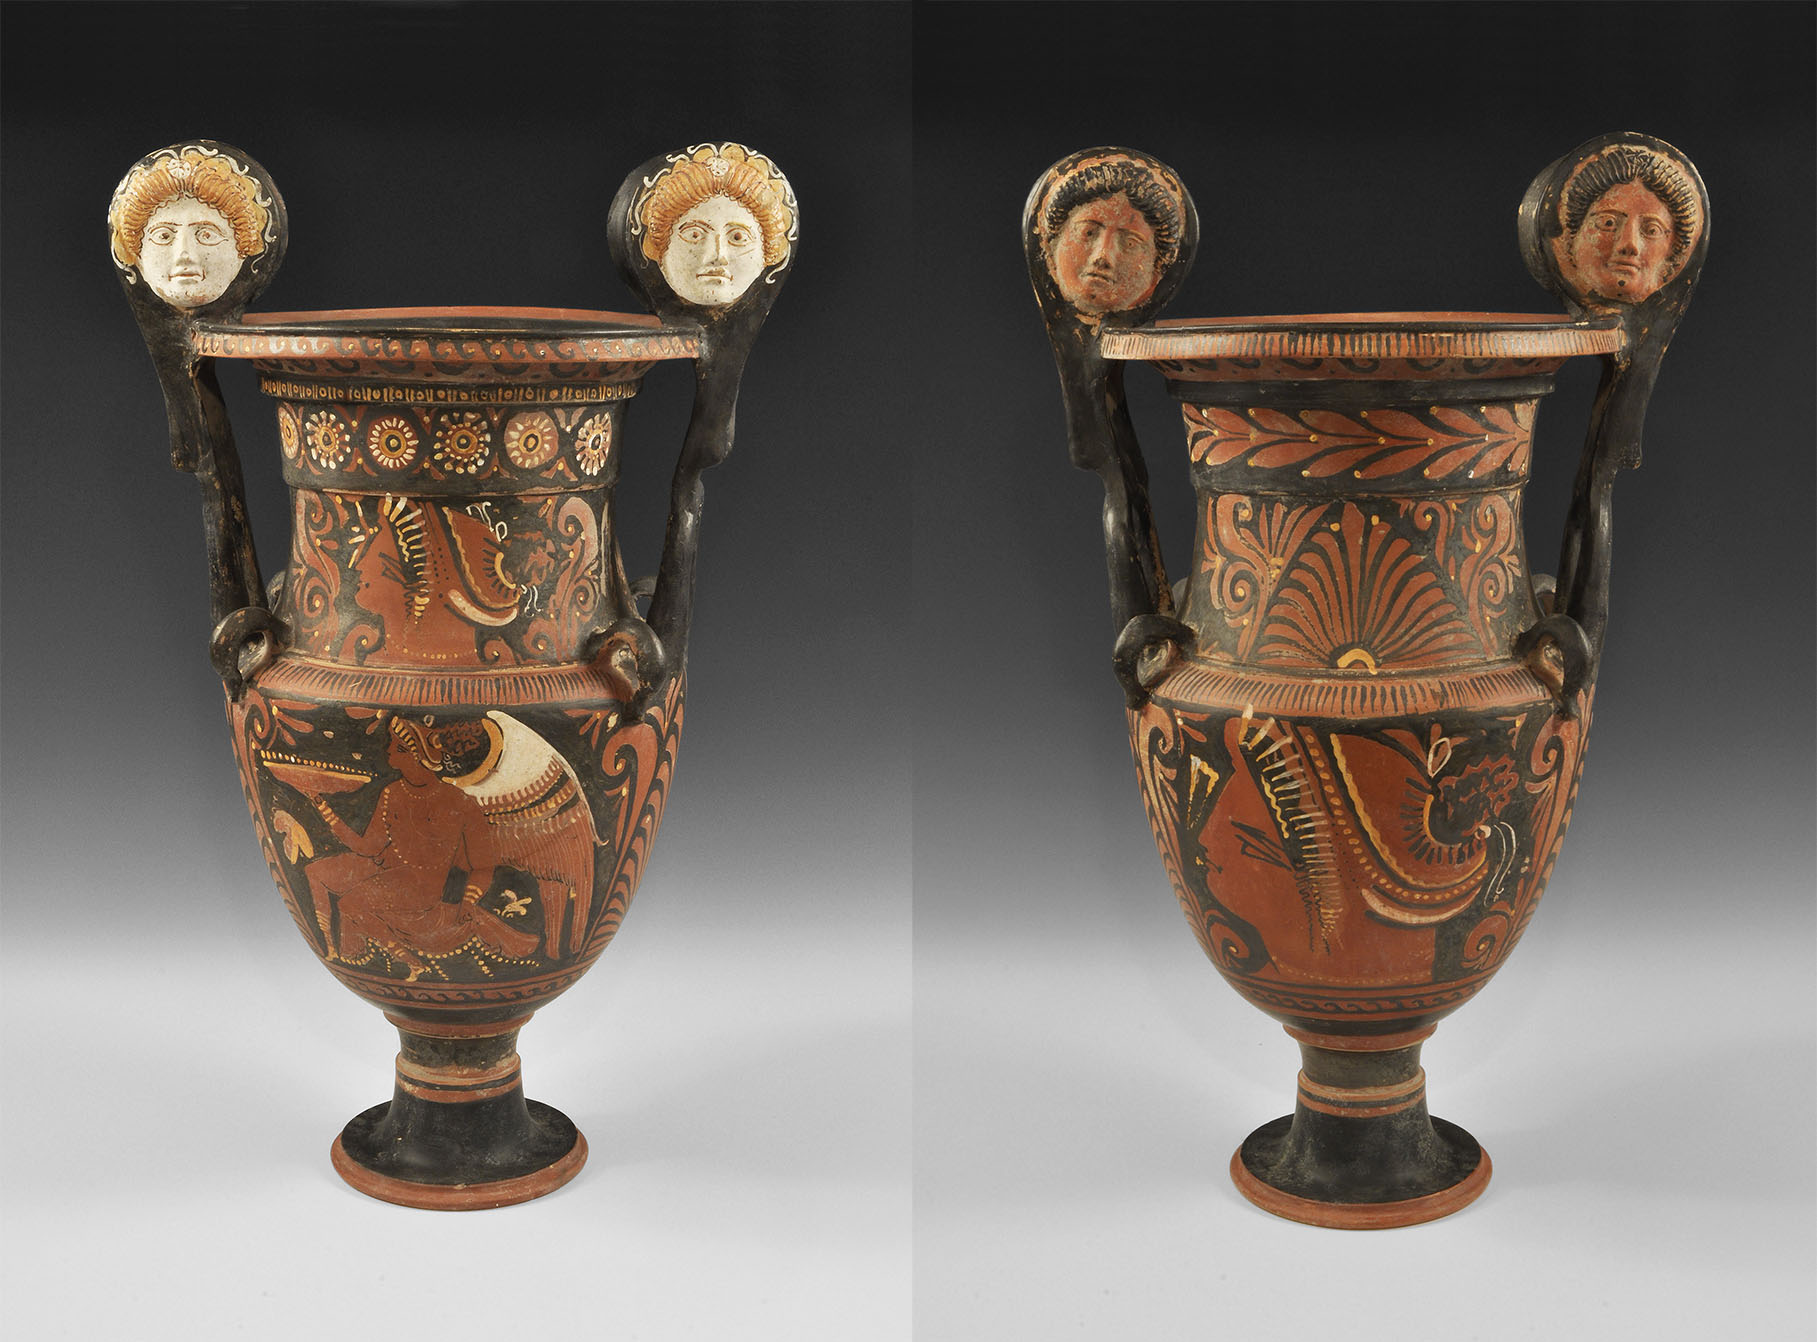 Greek Red-Figure Volute Krater with Medusa Heads and Ladies of Fashion